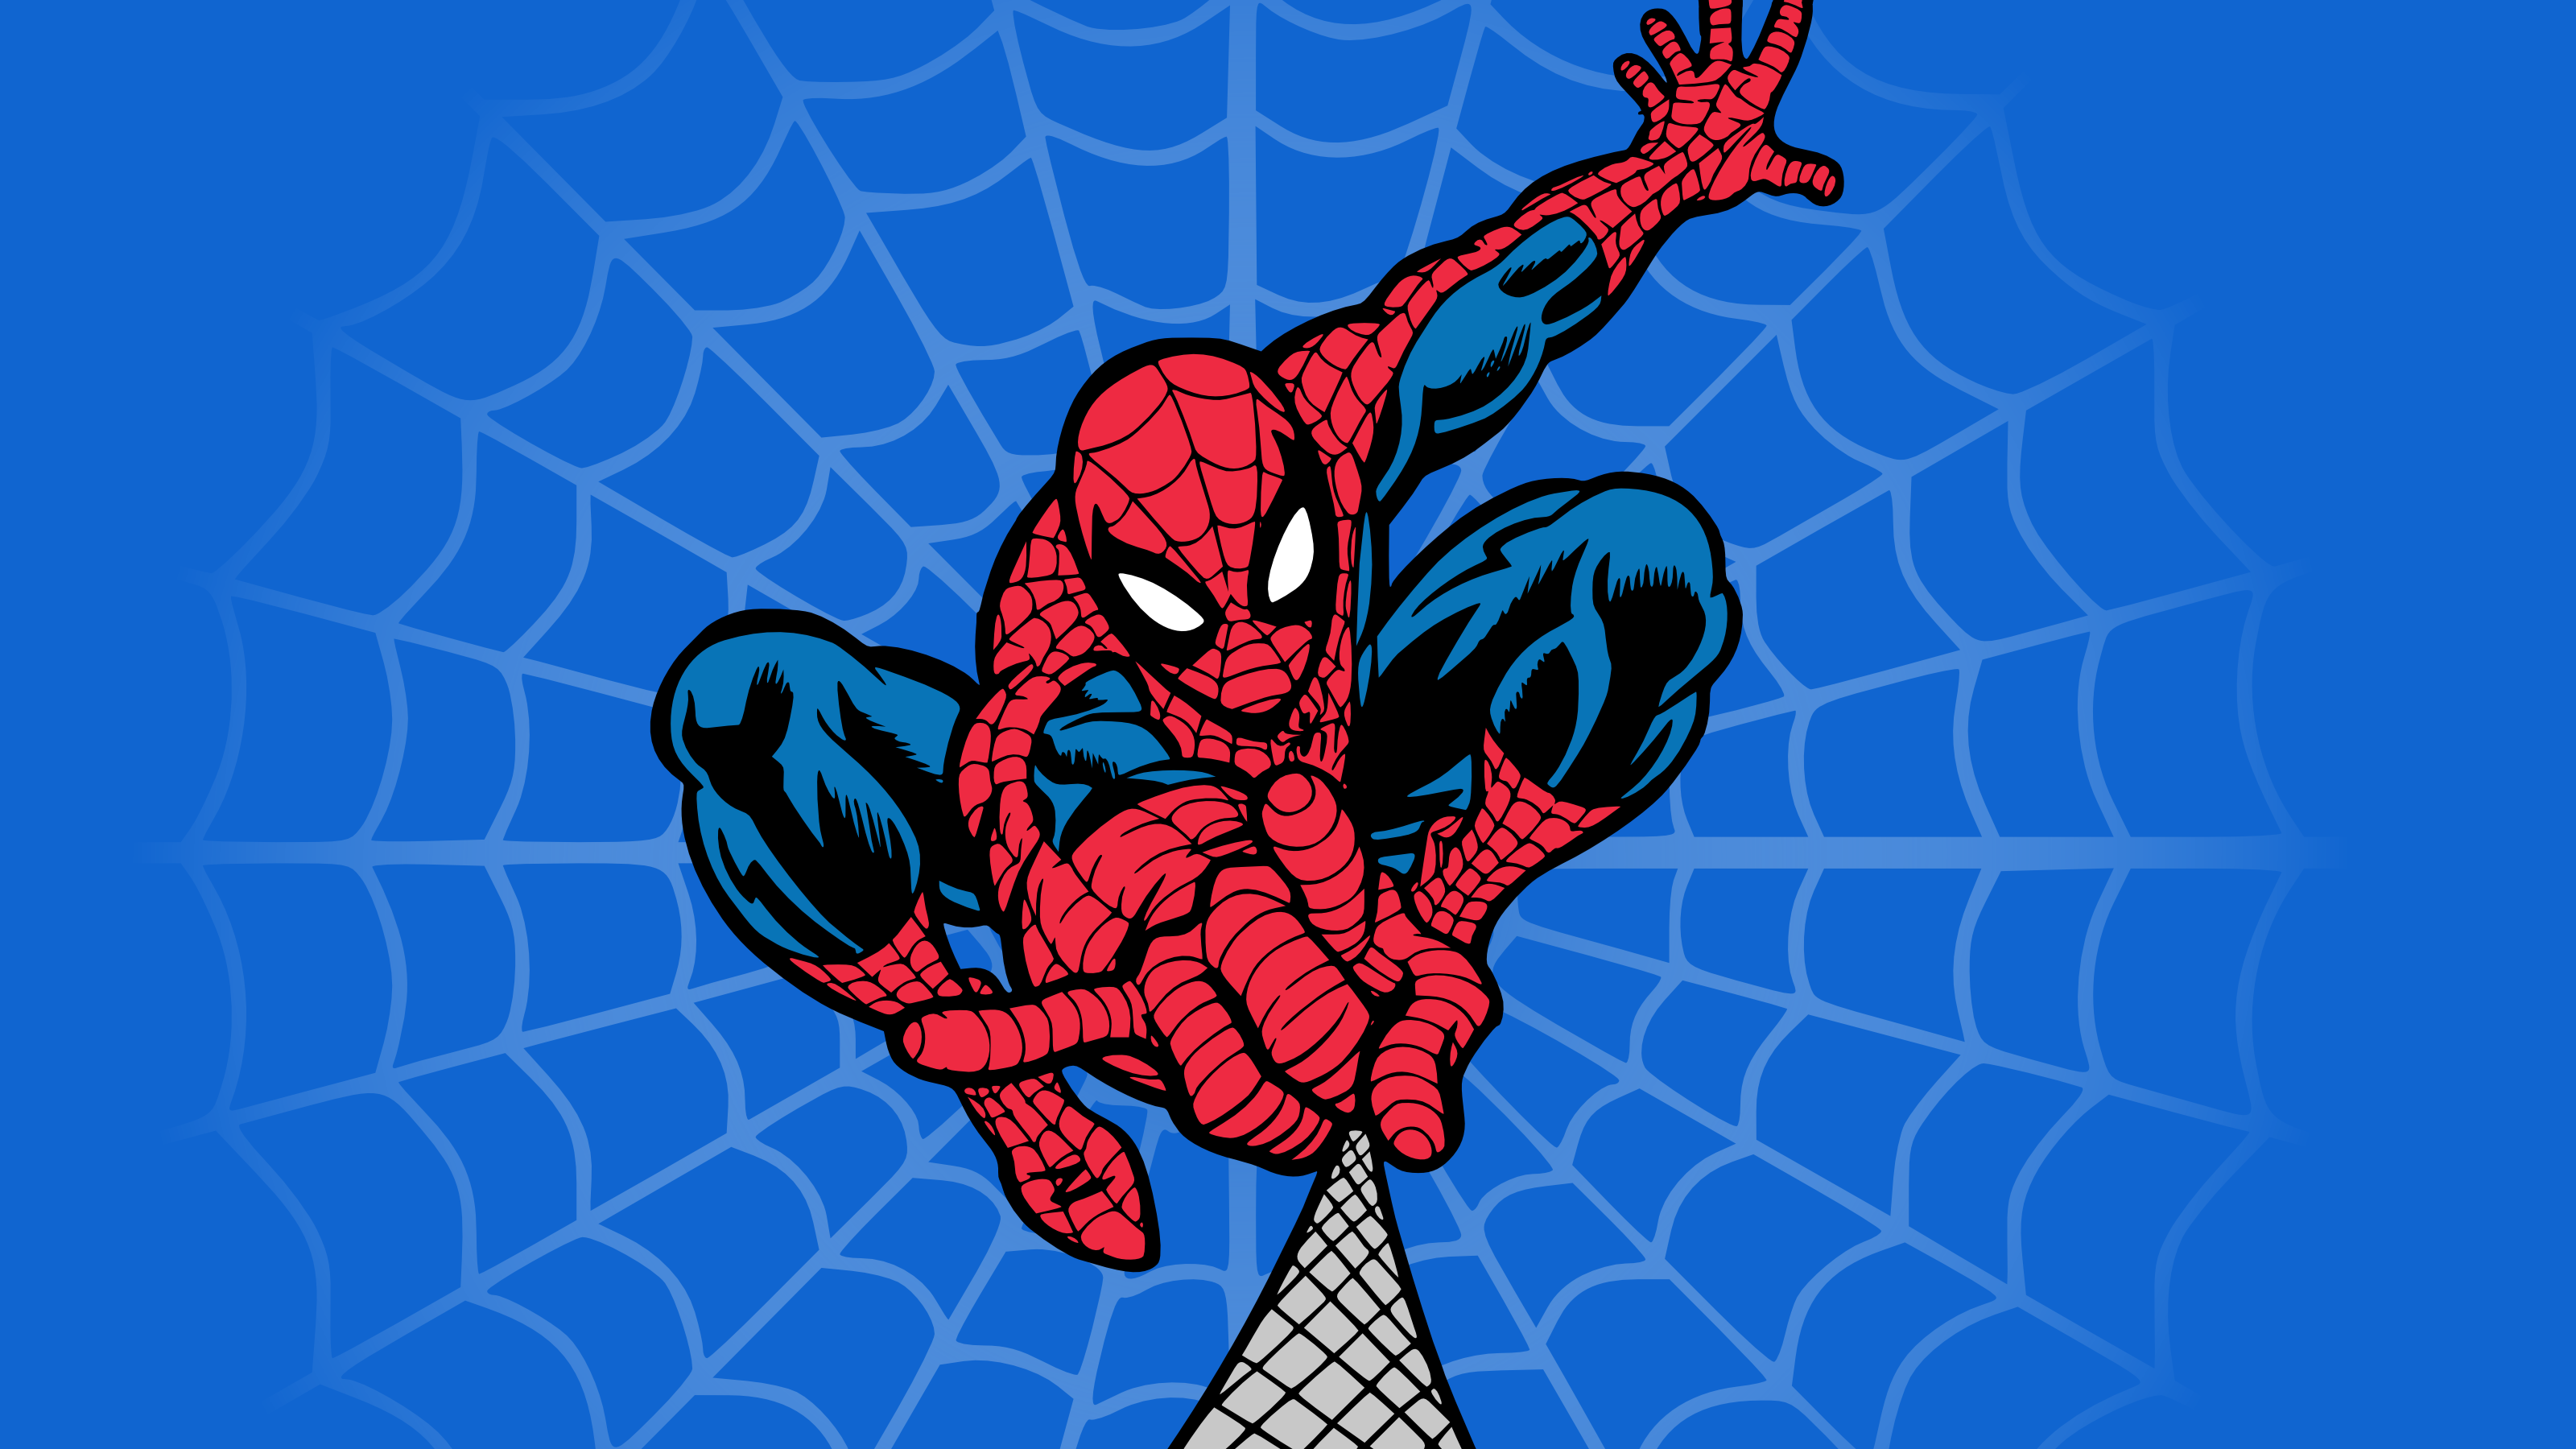 Spiderman comics spider man superhero wallpaper image Wallpapers 3200x1800